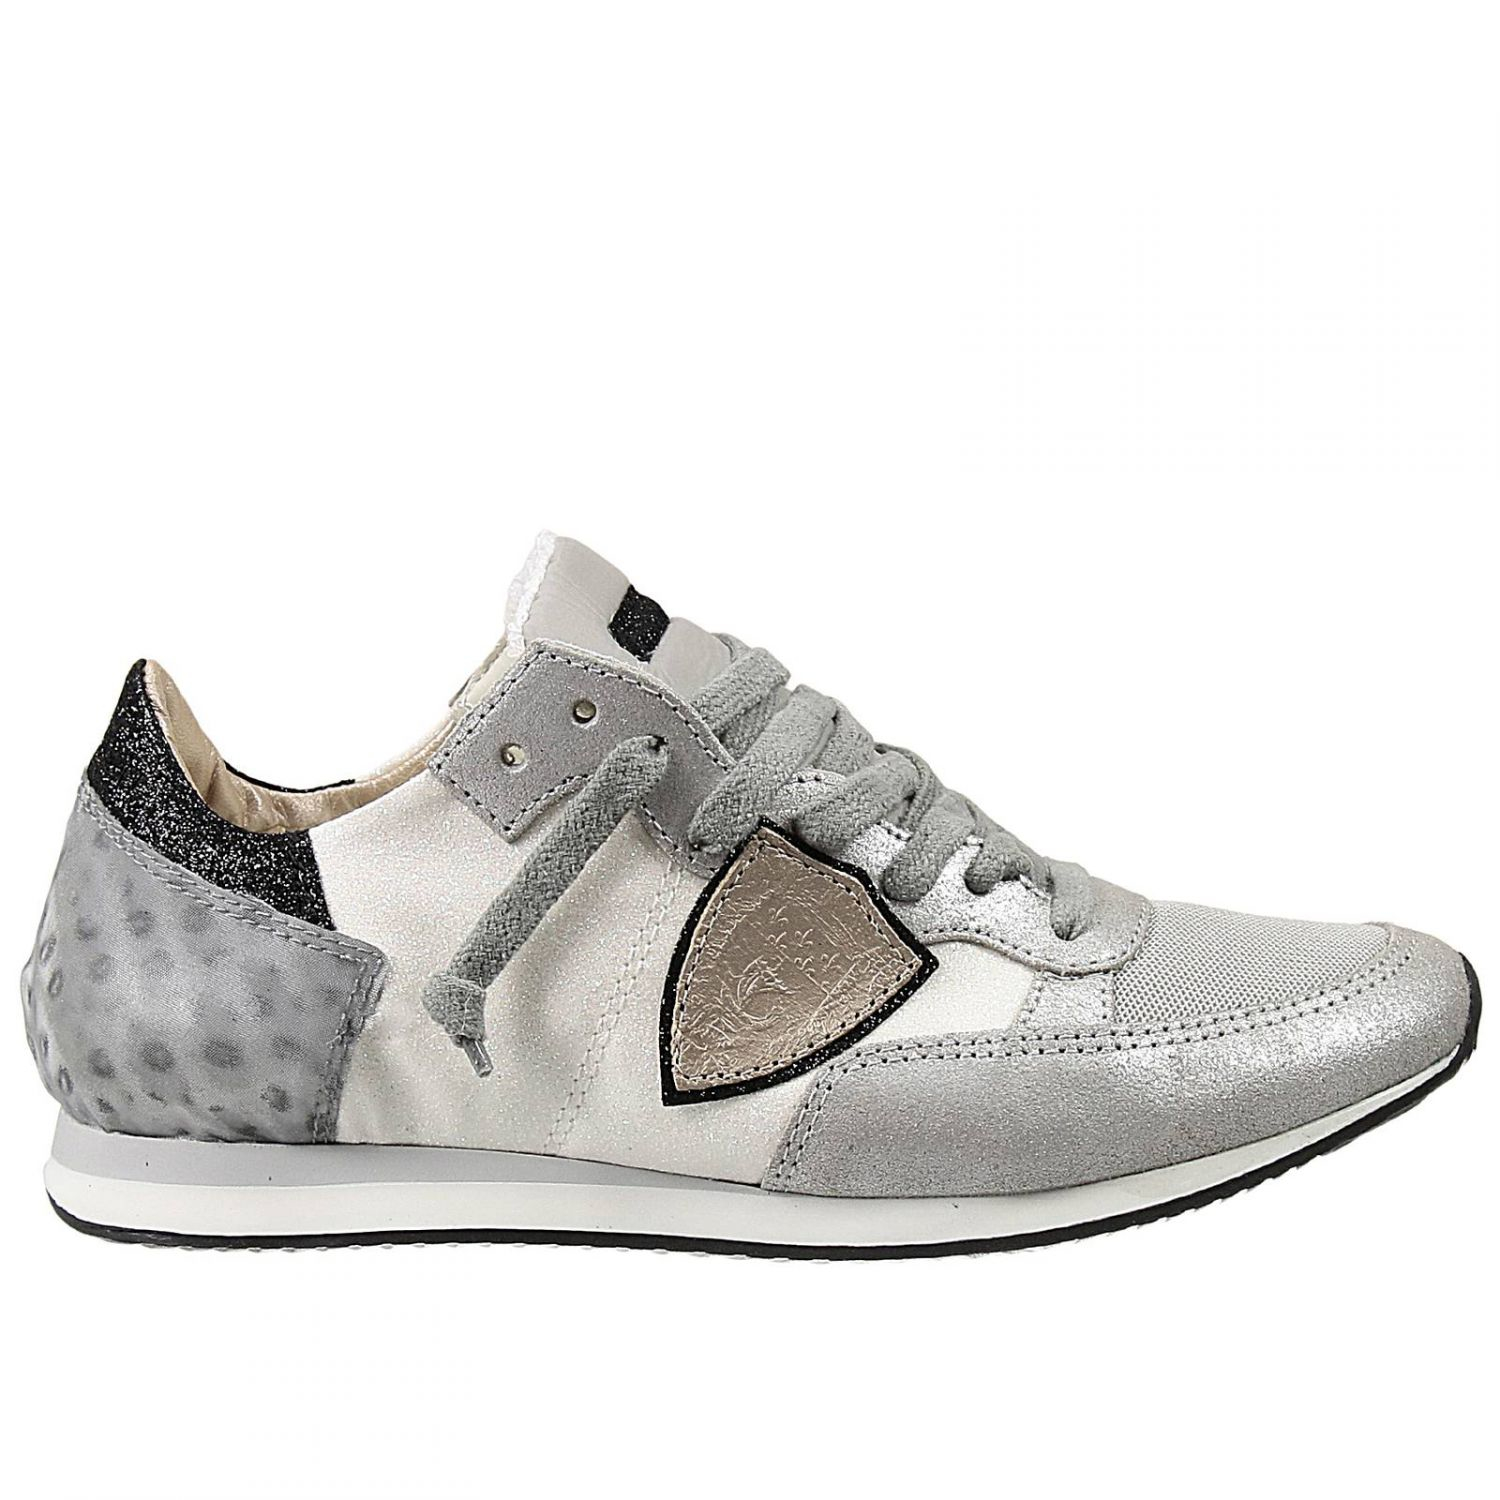 lyst philippe model sneakers in white. Black Bedroom Furniture Sets. Home Design Ideas